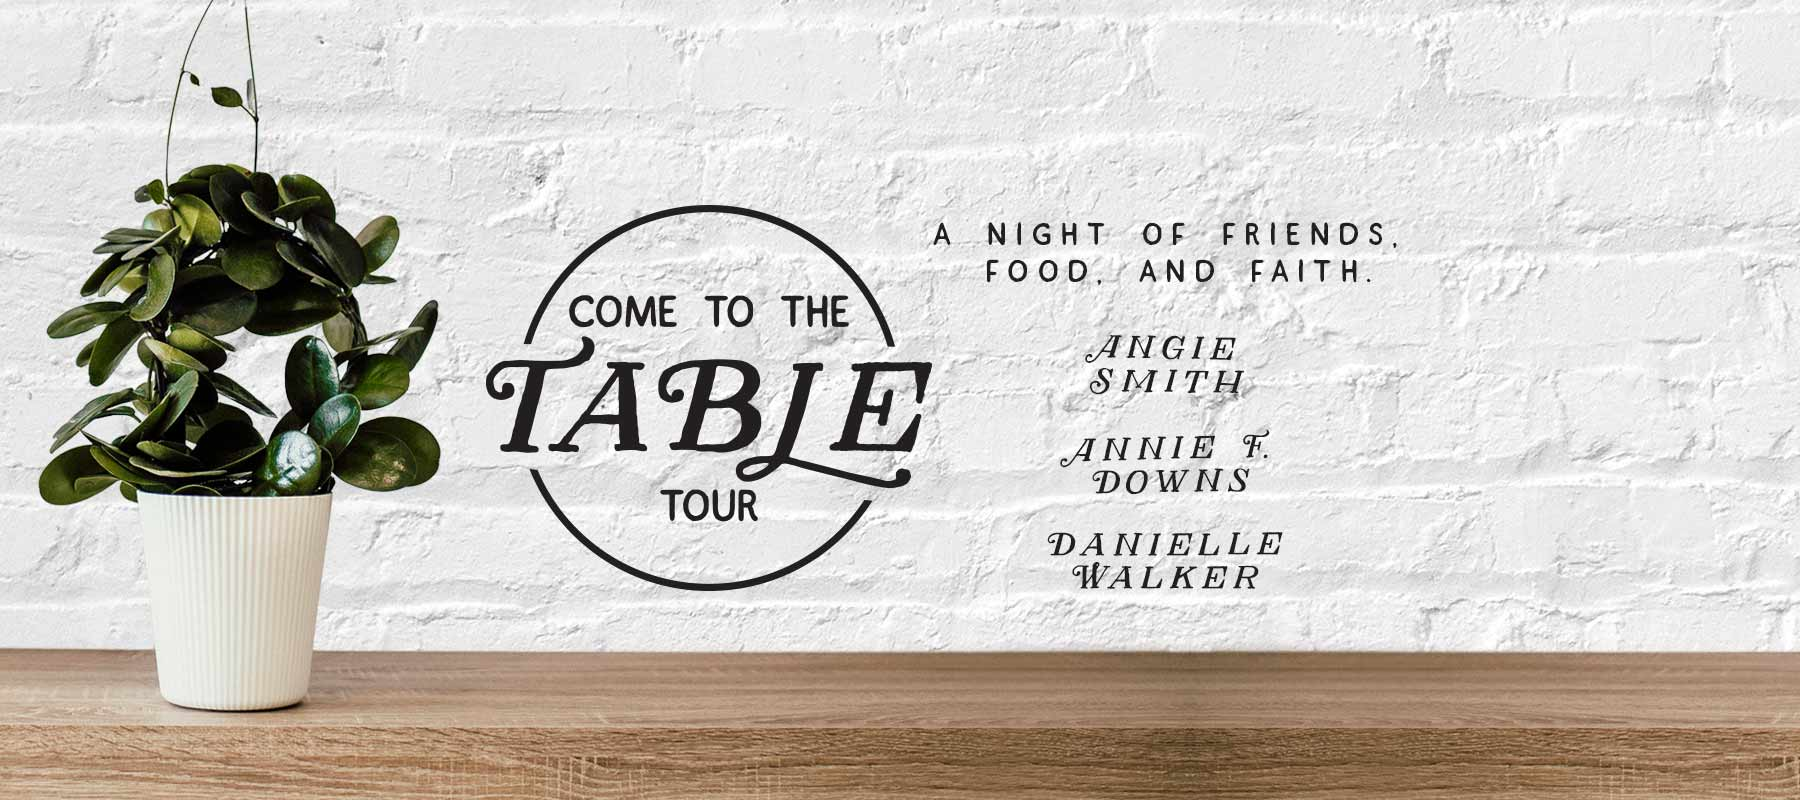 Come To The Table with Angie Smith, Danielle Walker, and Annie F. Downs logo